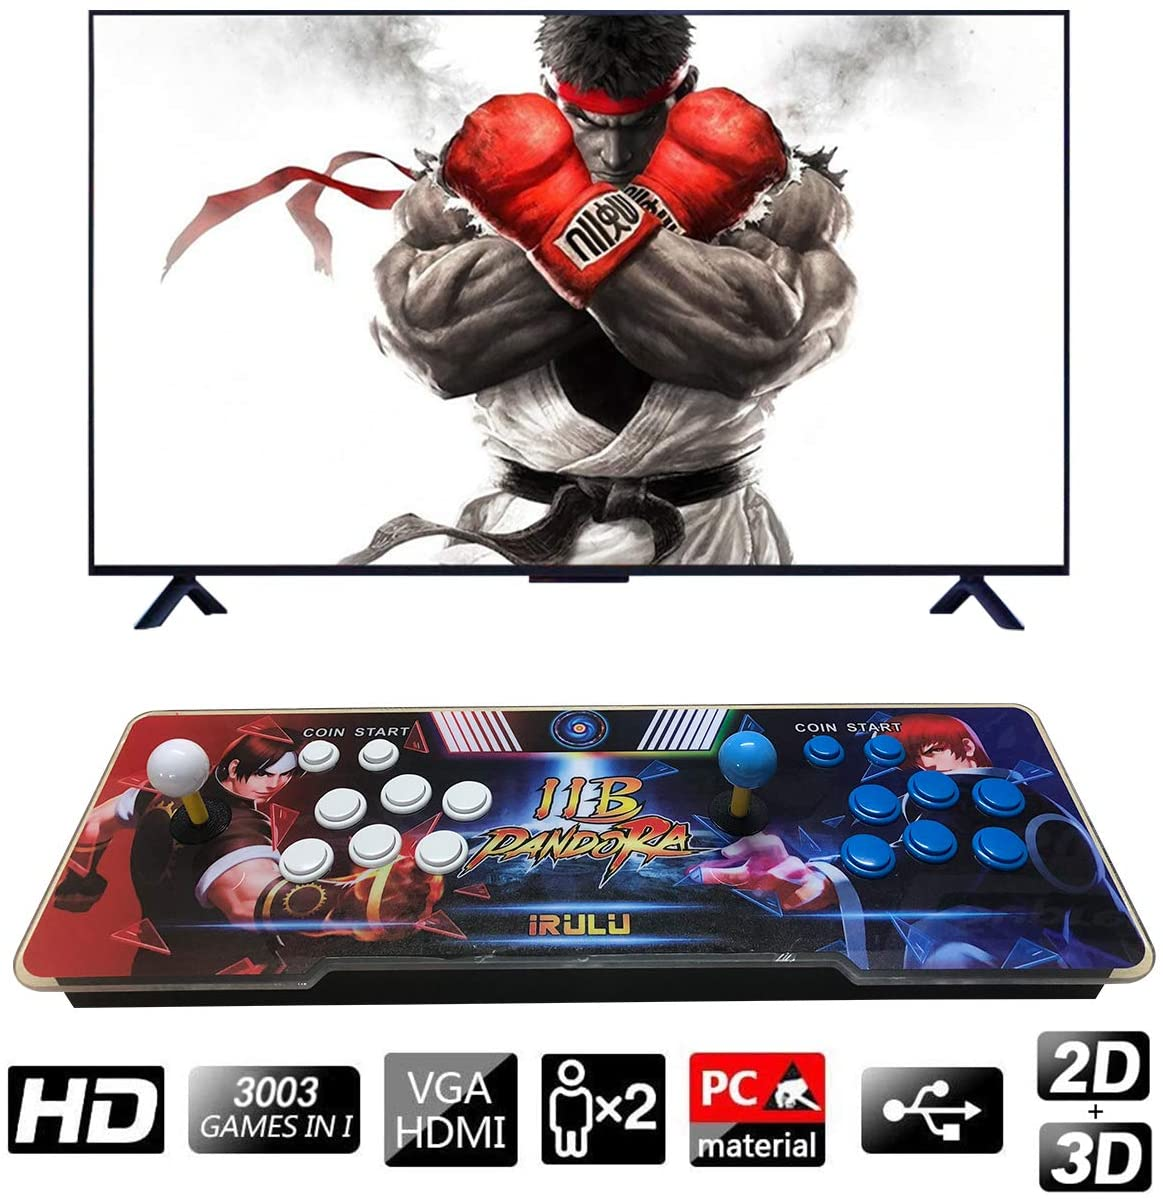 iRULU 3003 Arcade Game Machine,Family Pandora's Box Multiplayer Joystick Buttons Arcade Video Game for Home with 14 3D Classic Video Game, Newest System,Advanced CPU,Compatible HDMI and VGA (Box 11B)